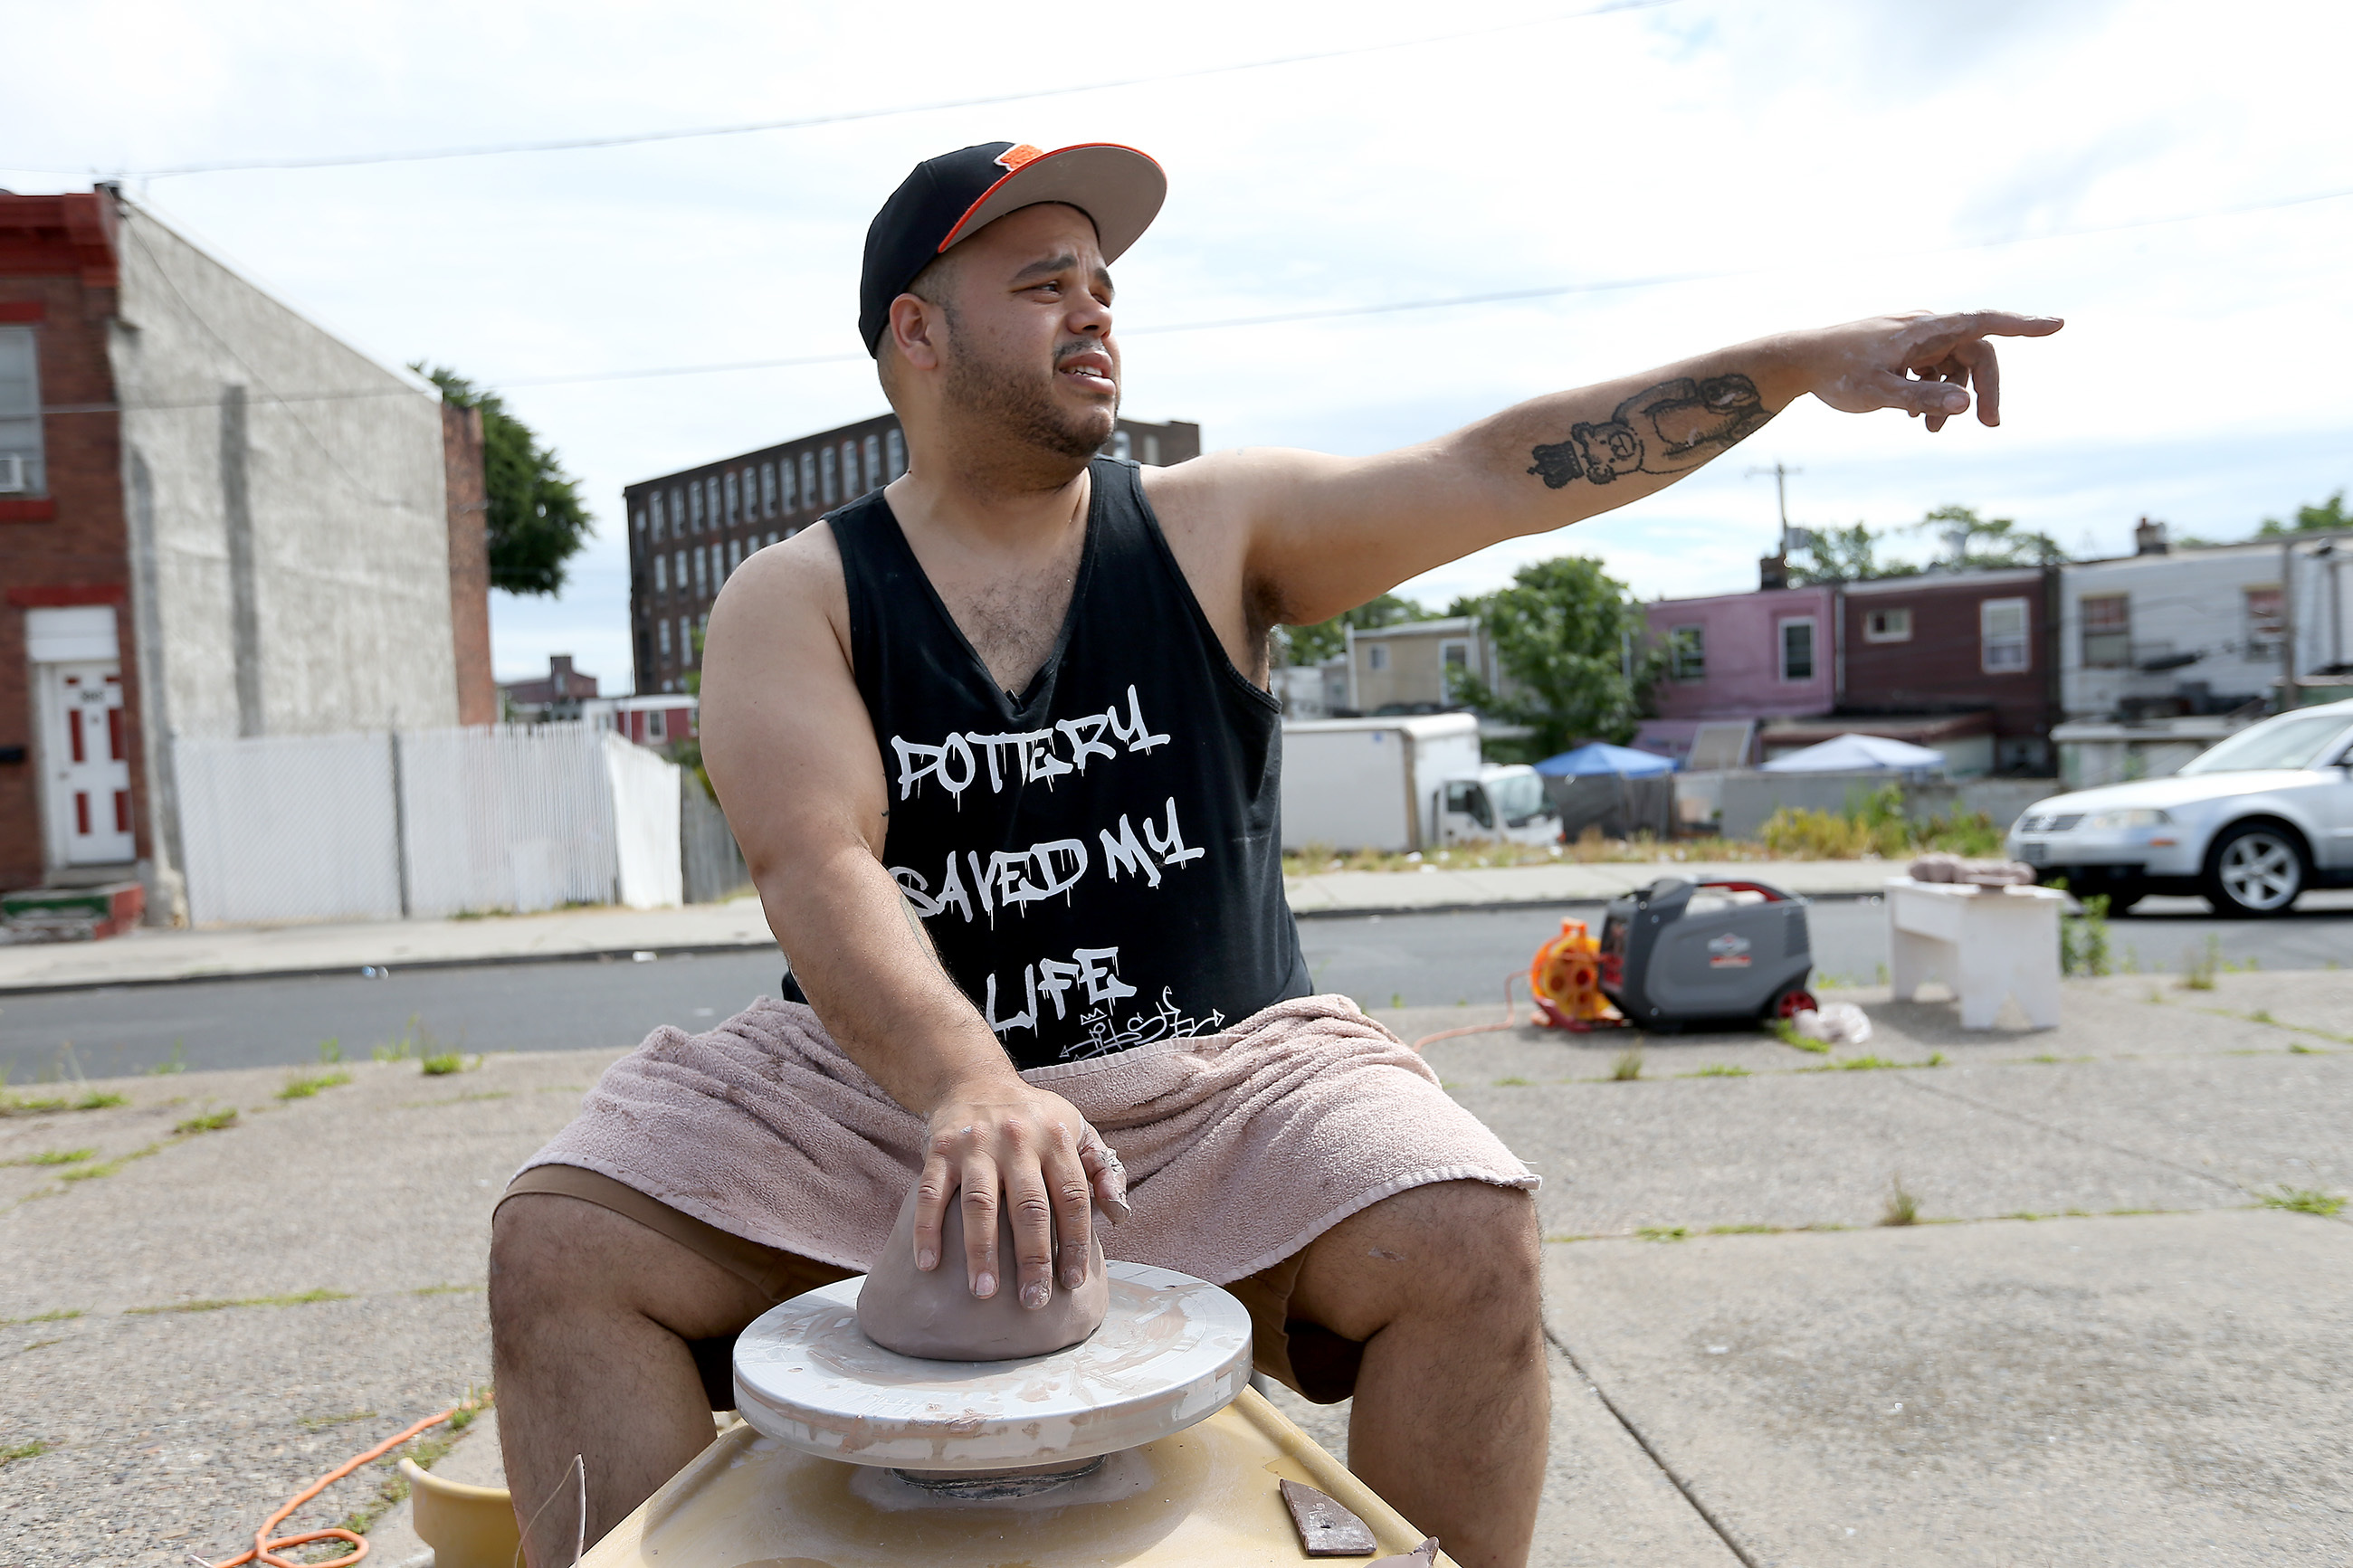 Award-winning ceramic artist Roberto Lugo points to an area where he use to graffiti as he does a pottery demonstration at E. Tusculum and Somerset streets in Philadelphia, PA on June 19, 2018.